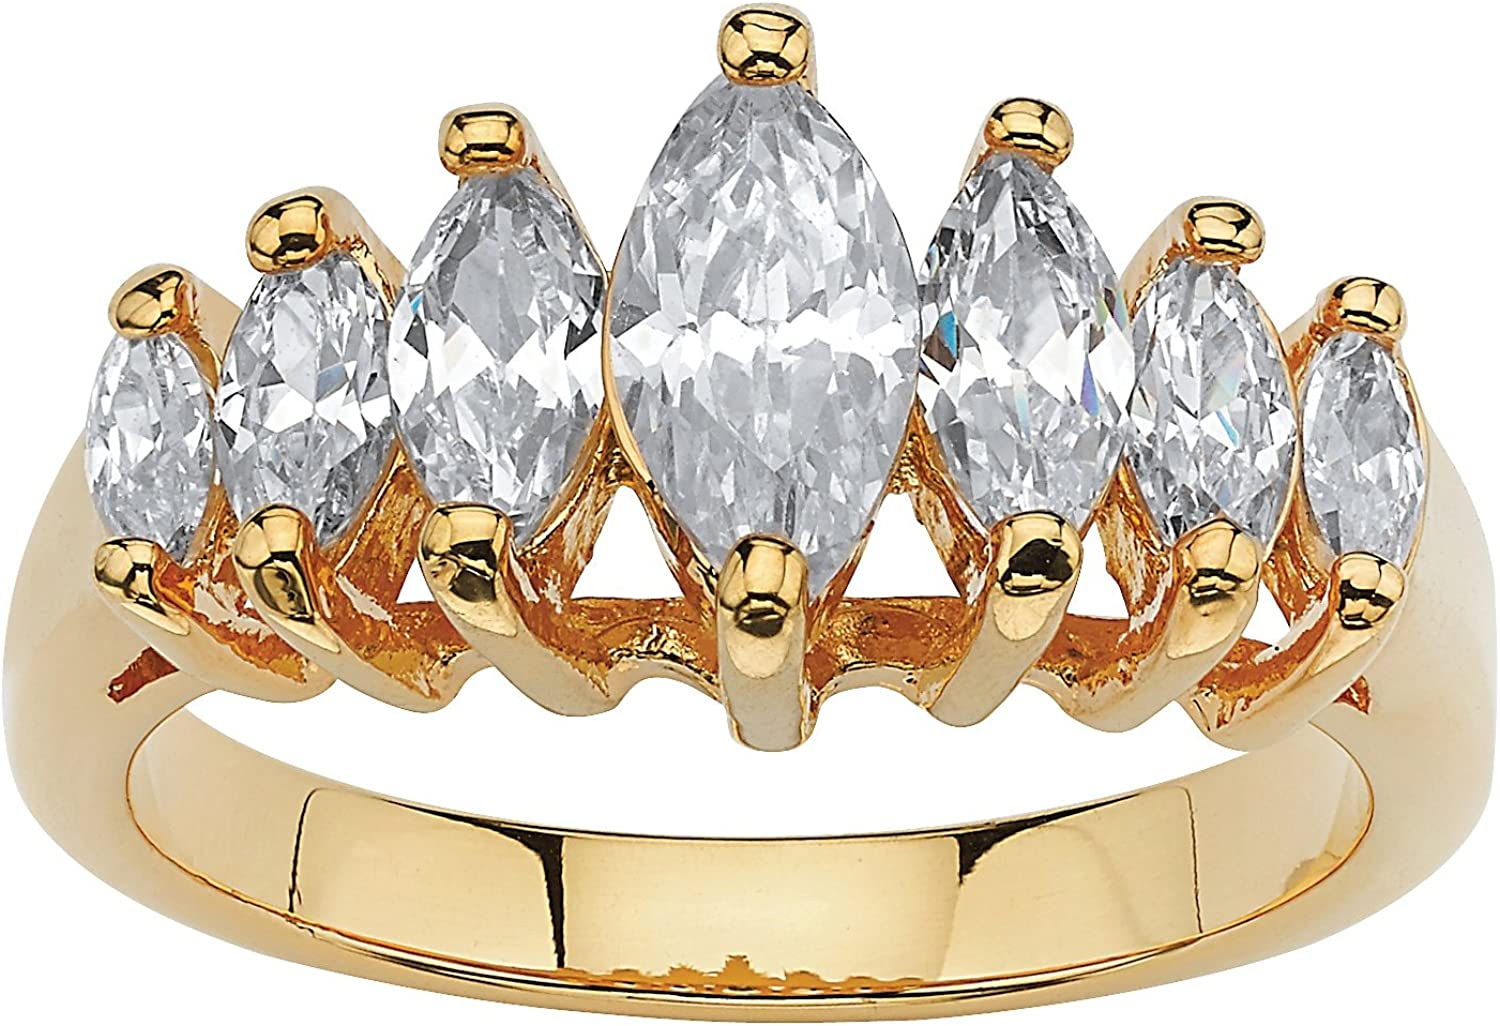 Palm Beach Jewelry 18K Yellow Gold Plated Marquise Cut Cubic Zirconia Graduated Anniversary Ring